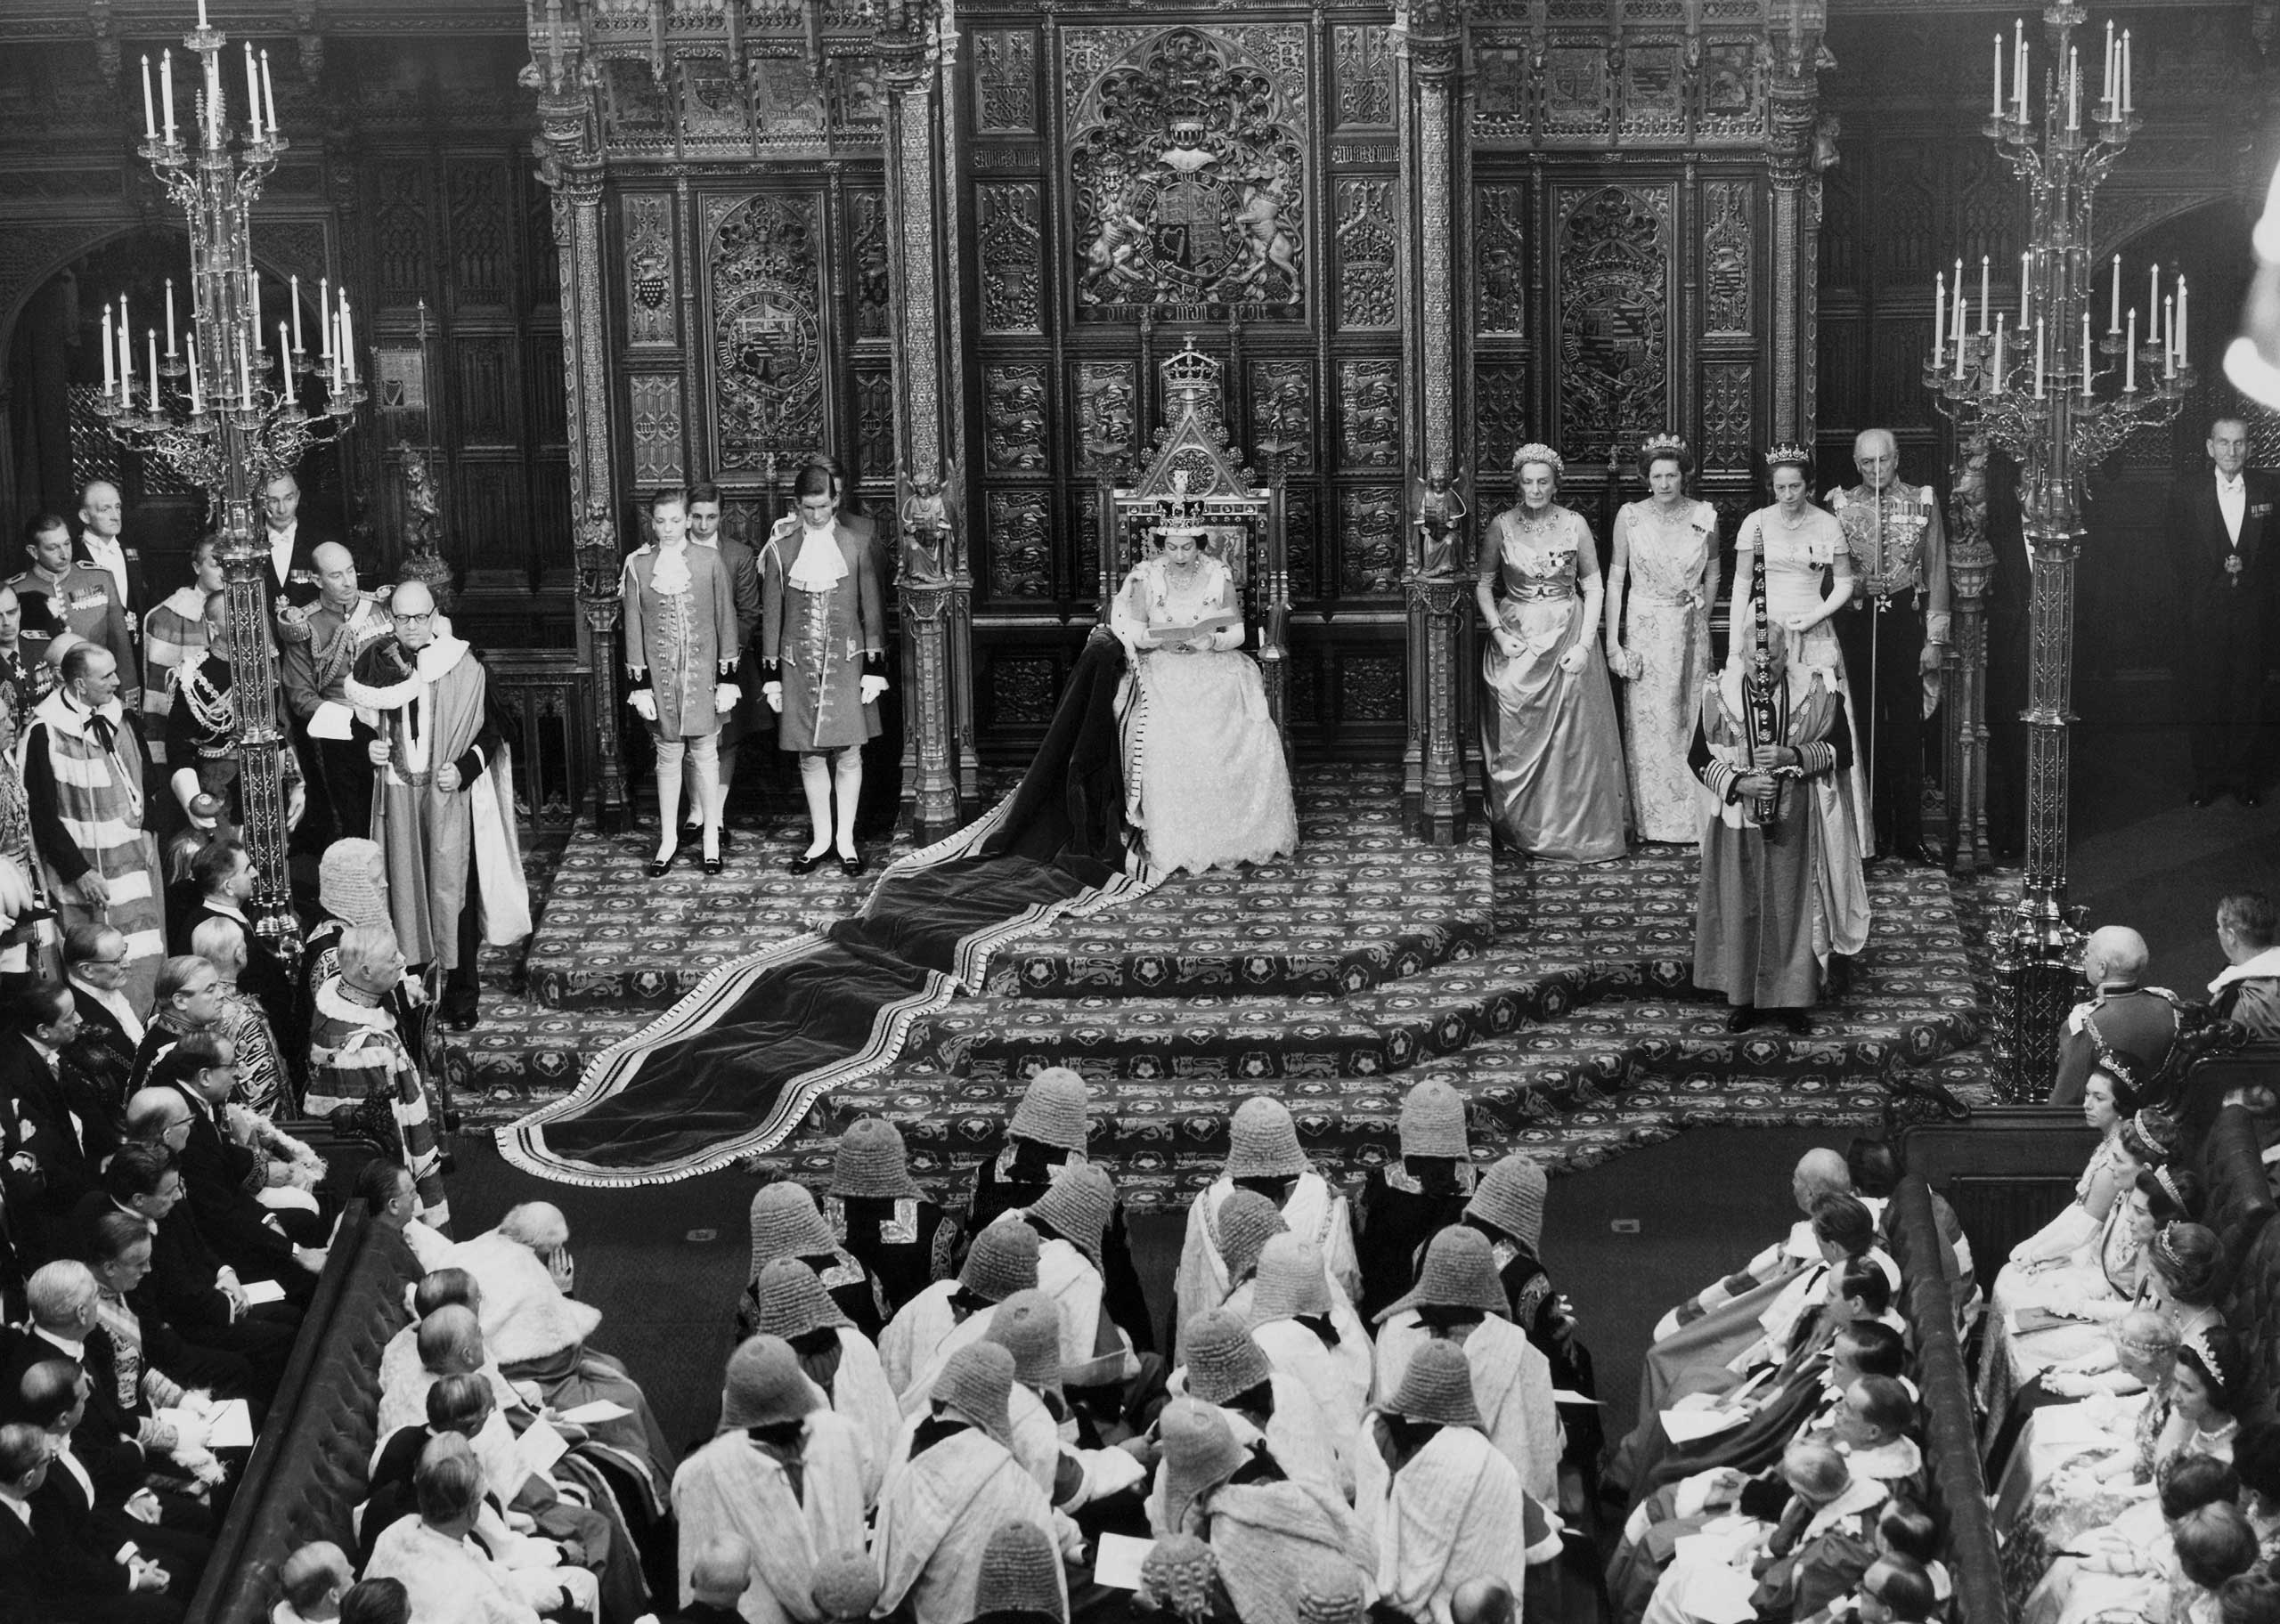 Queen Elizabeth II reads her speech from the throne in the House of Lords as she formally opens the new parliament in London in 1964.